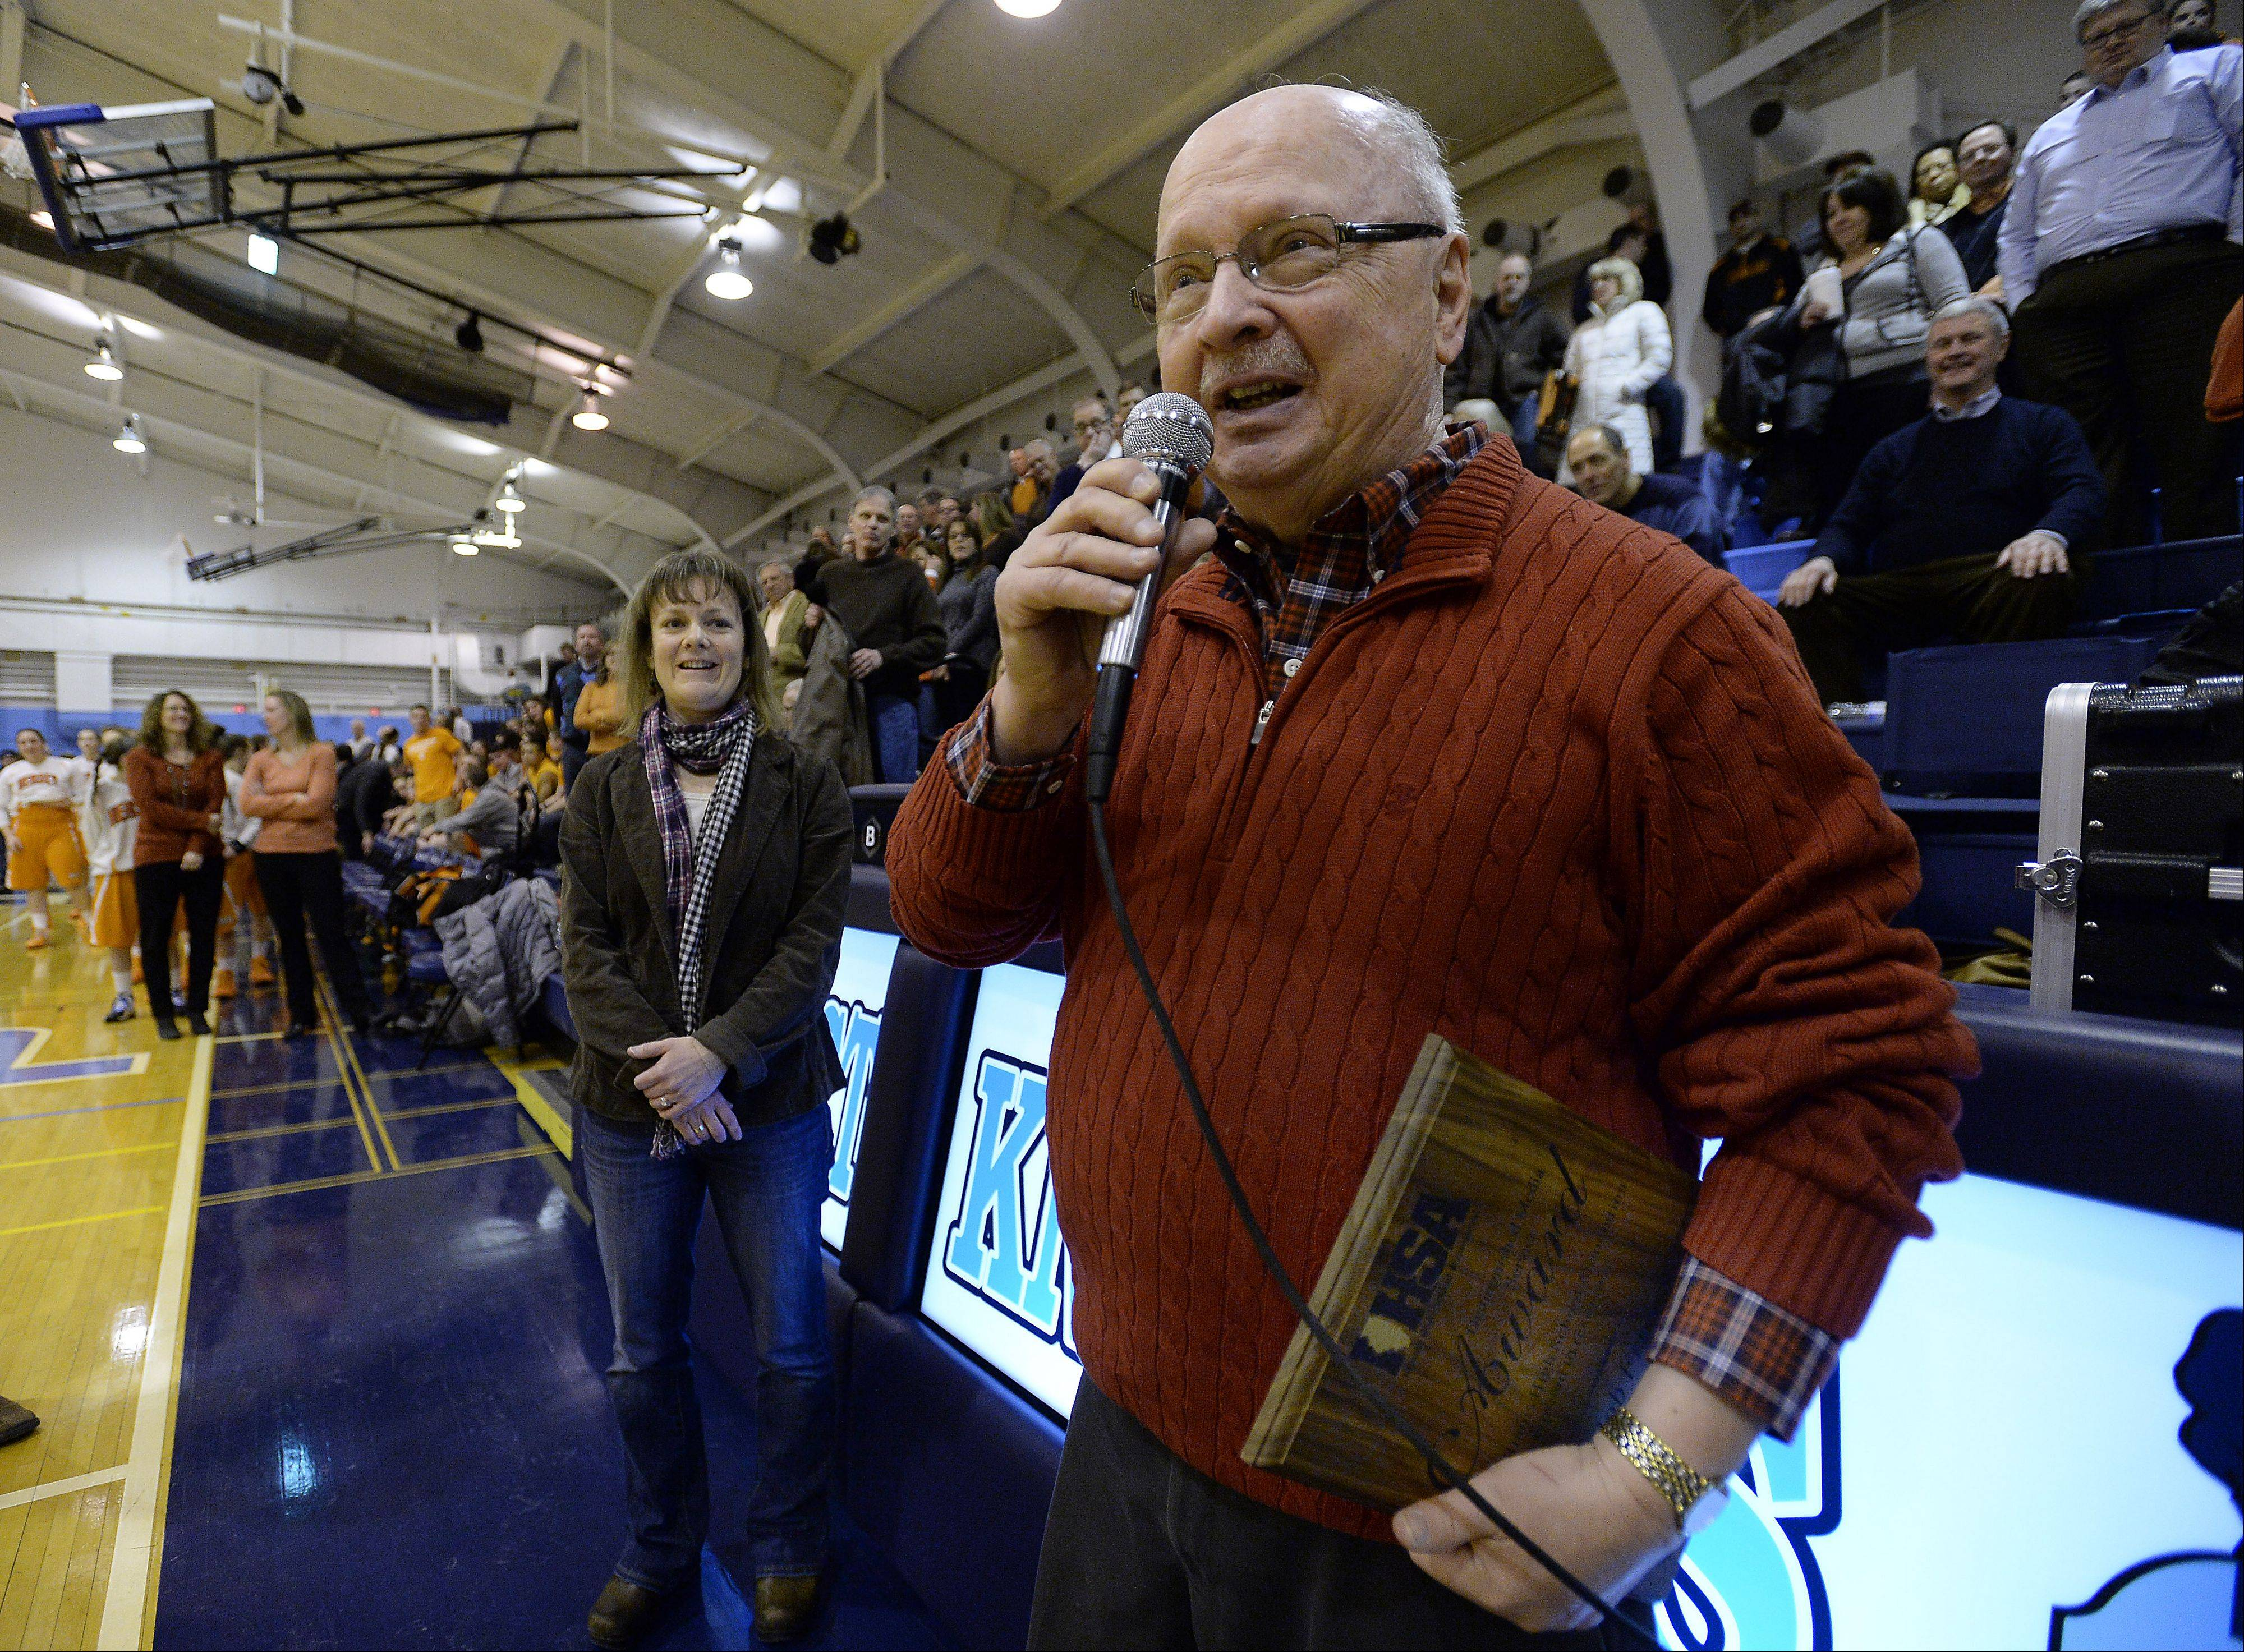 Sports writer Bob Frisk stands with his daughter, Susan Alesia of Madison, Wis., while thanking the crowd at Prospect High School for their support. Frisk is among the first recipients of the IHSA Distinguished Media Service Award presented to him on Friday.